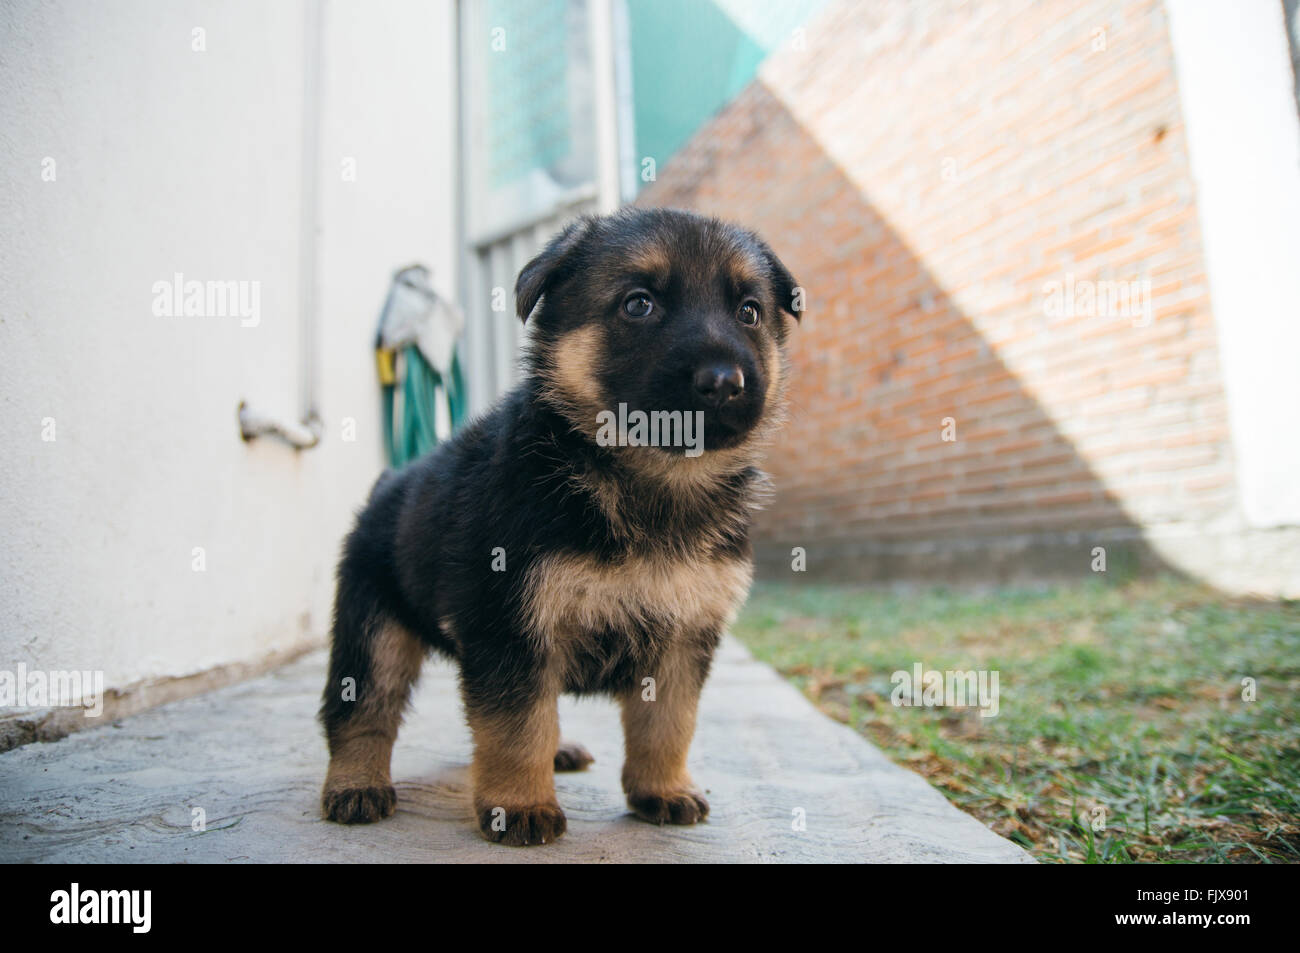 Close Up Of German Shepherd Puppy In Lawn Stock Photo 97693457 Alamy